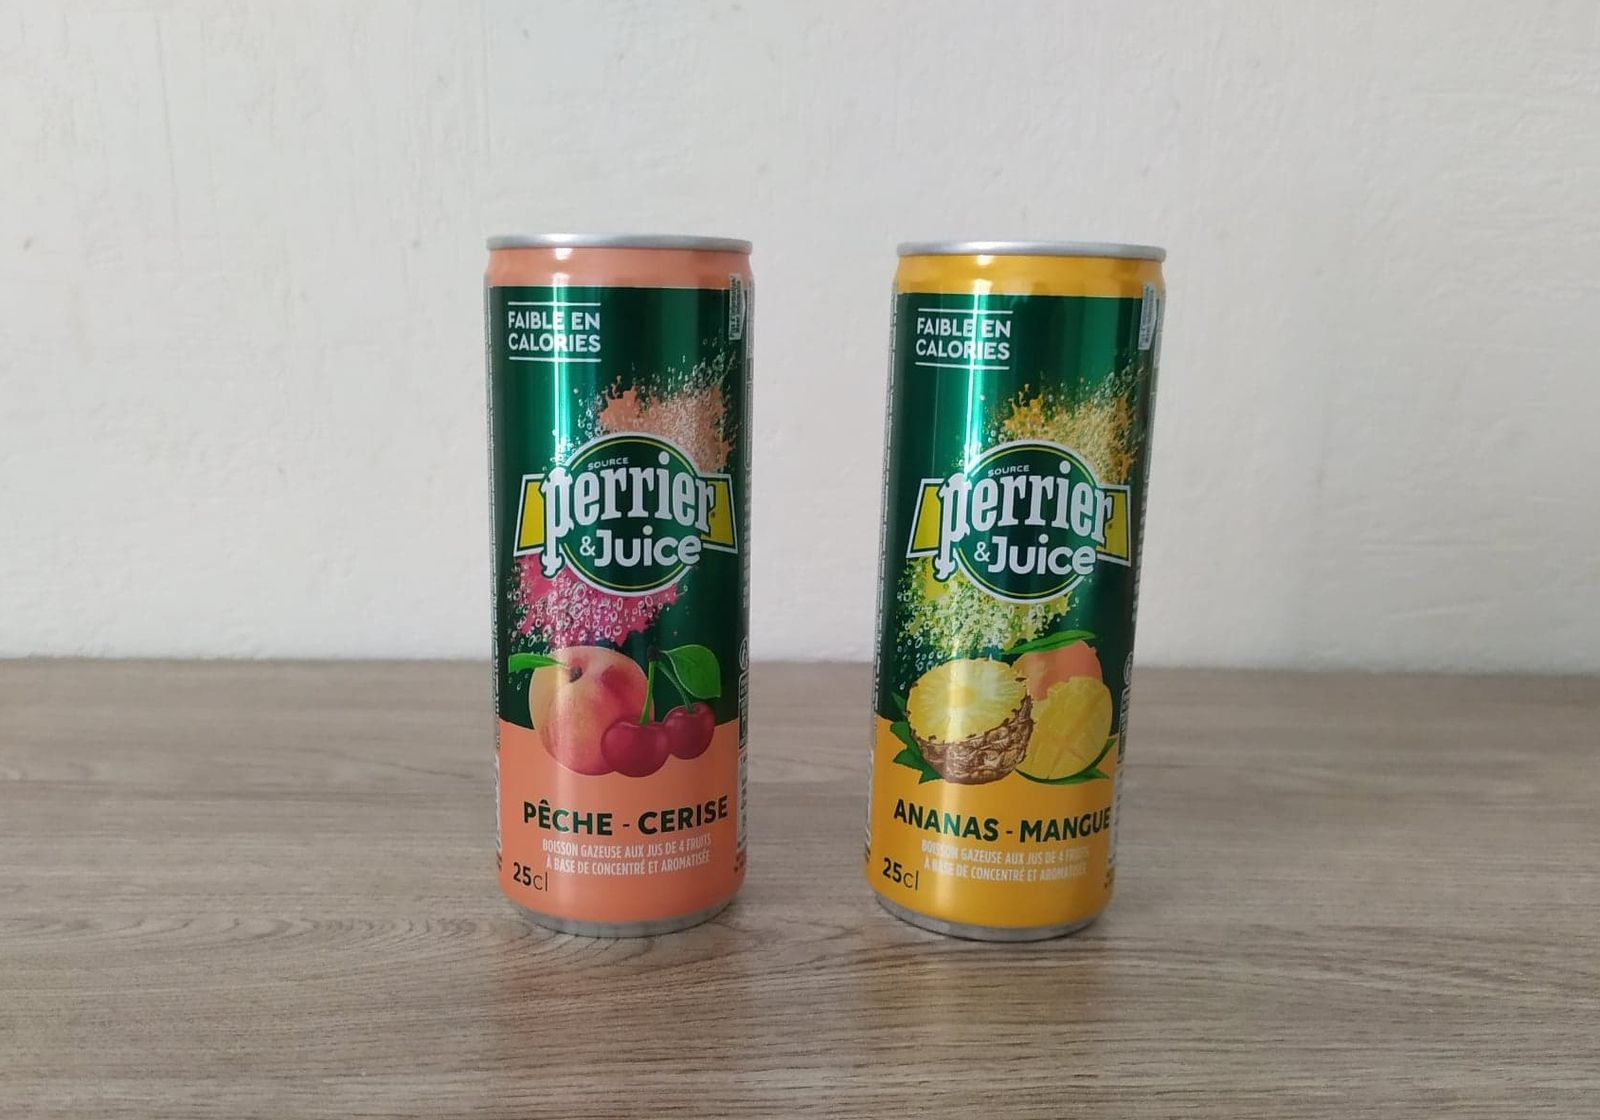 Duo de boissons aux fruits Ananas-Mangue ou Pêche-Cerise PERRIER JUICE